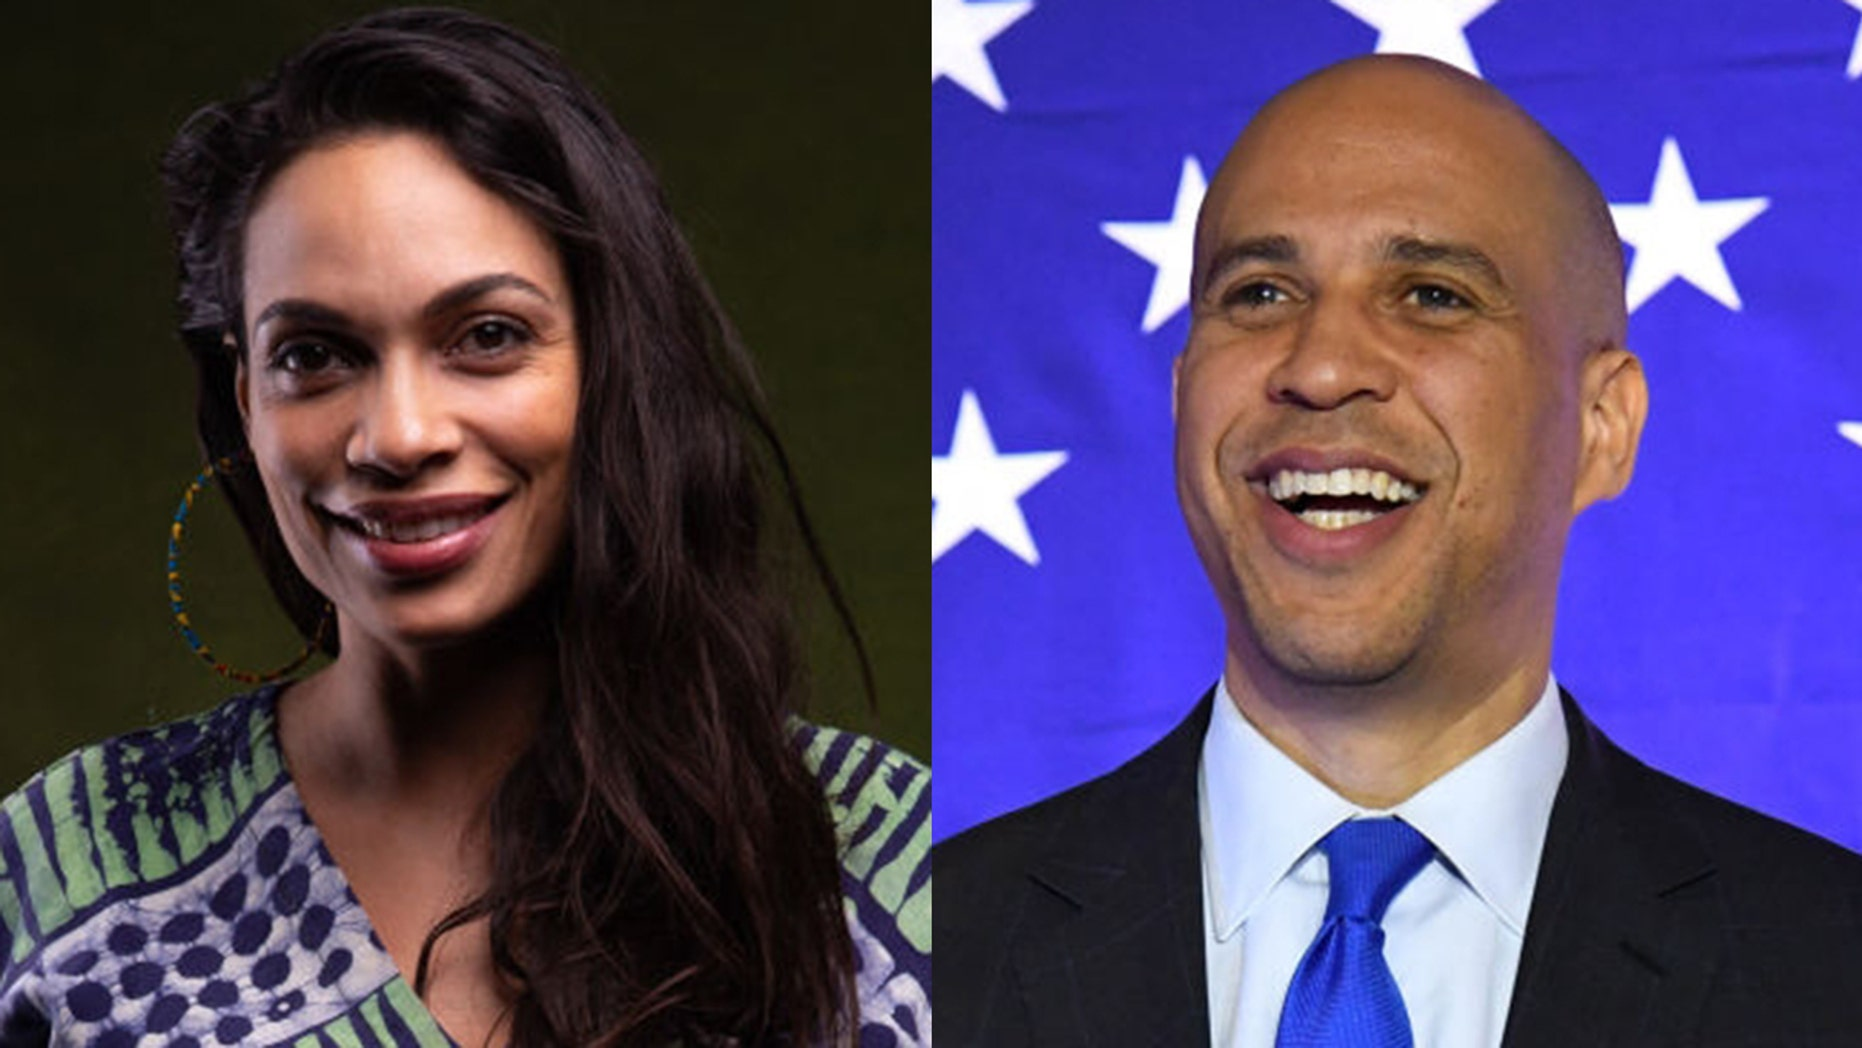 Sen. Cory Booker, the New Jersey Democrat who's launched a bid for the White House in 2020, is reportedly dating actress Rosario Dawson.